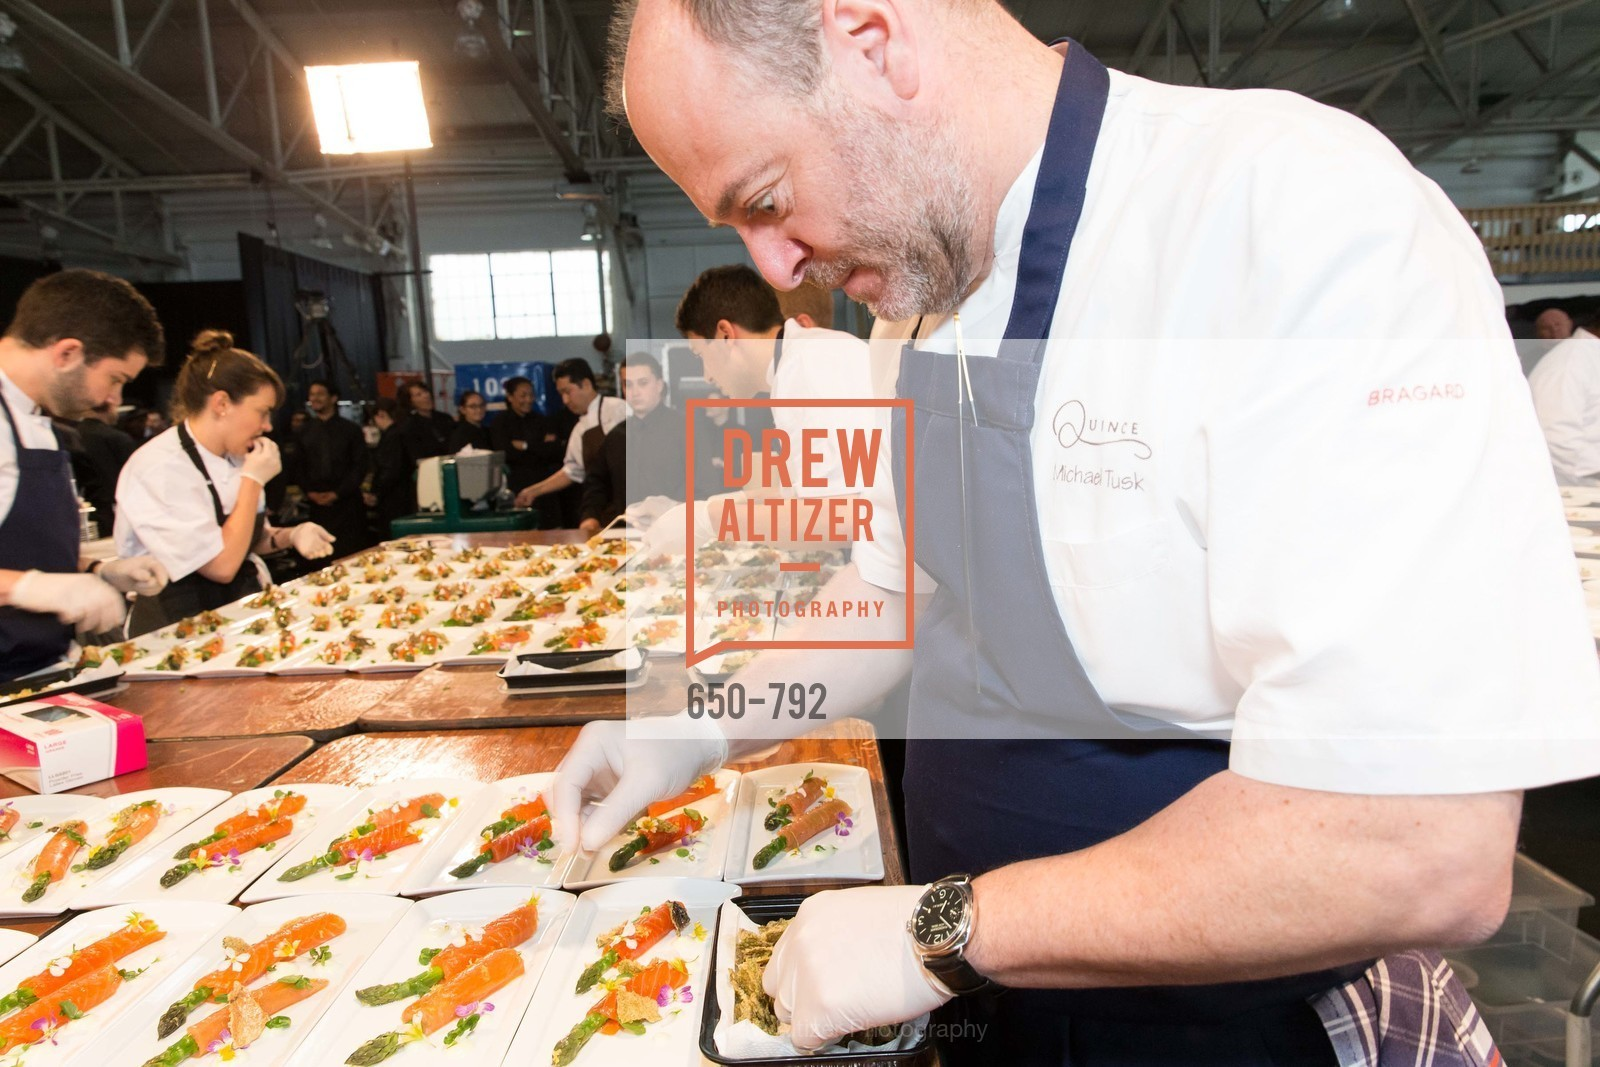 Michael Tusk, MEALS ON WHEELS OF SAN FRANCISCO'S 28th Annual Star Chefs and Vintners Gala, US, April 19th, 2015,Drew Altizer, Drew Altizer Photography, full-service agency, private events, San Francisco photographer, photographer california